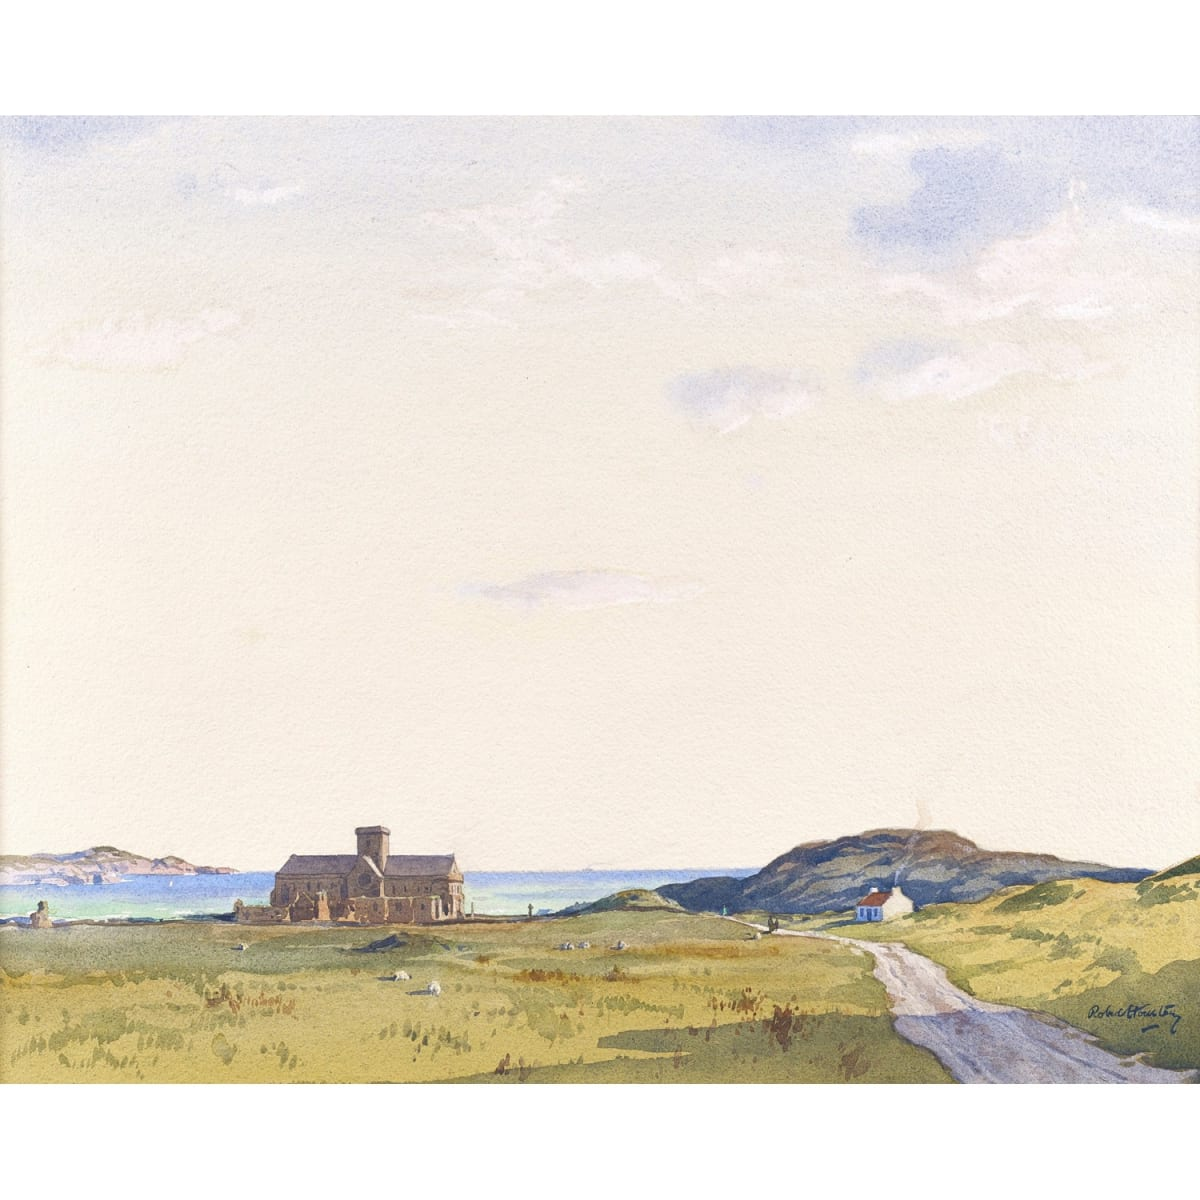 Robert Houston Iona Abbey signed; signed and titled verso watercolour 22 1/4 x 28 1/4 inches